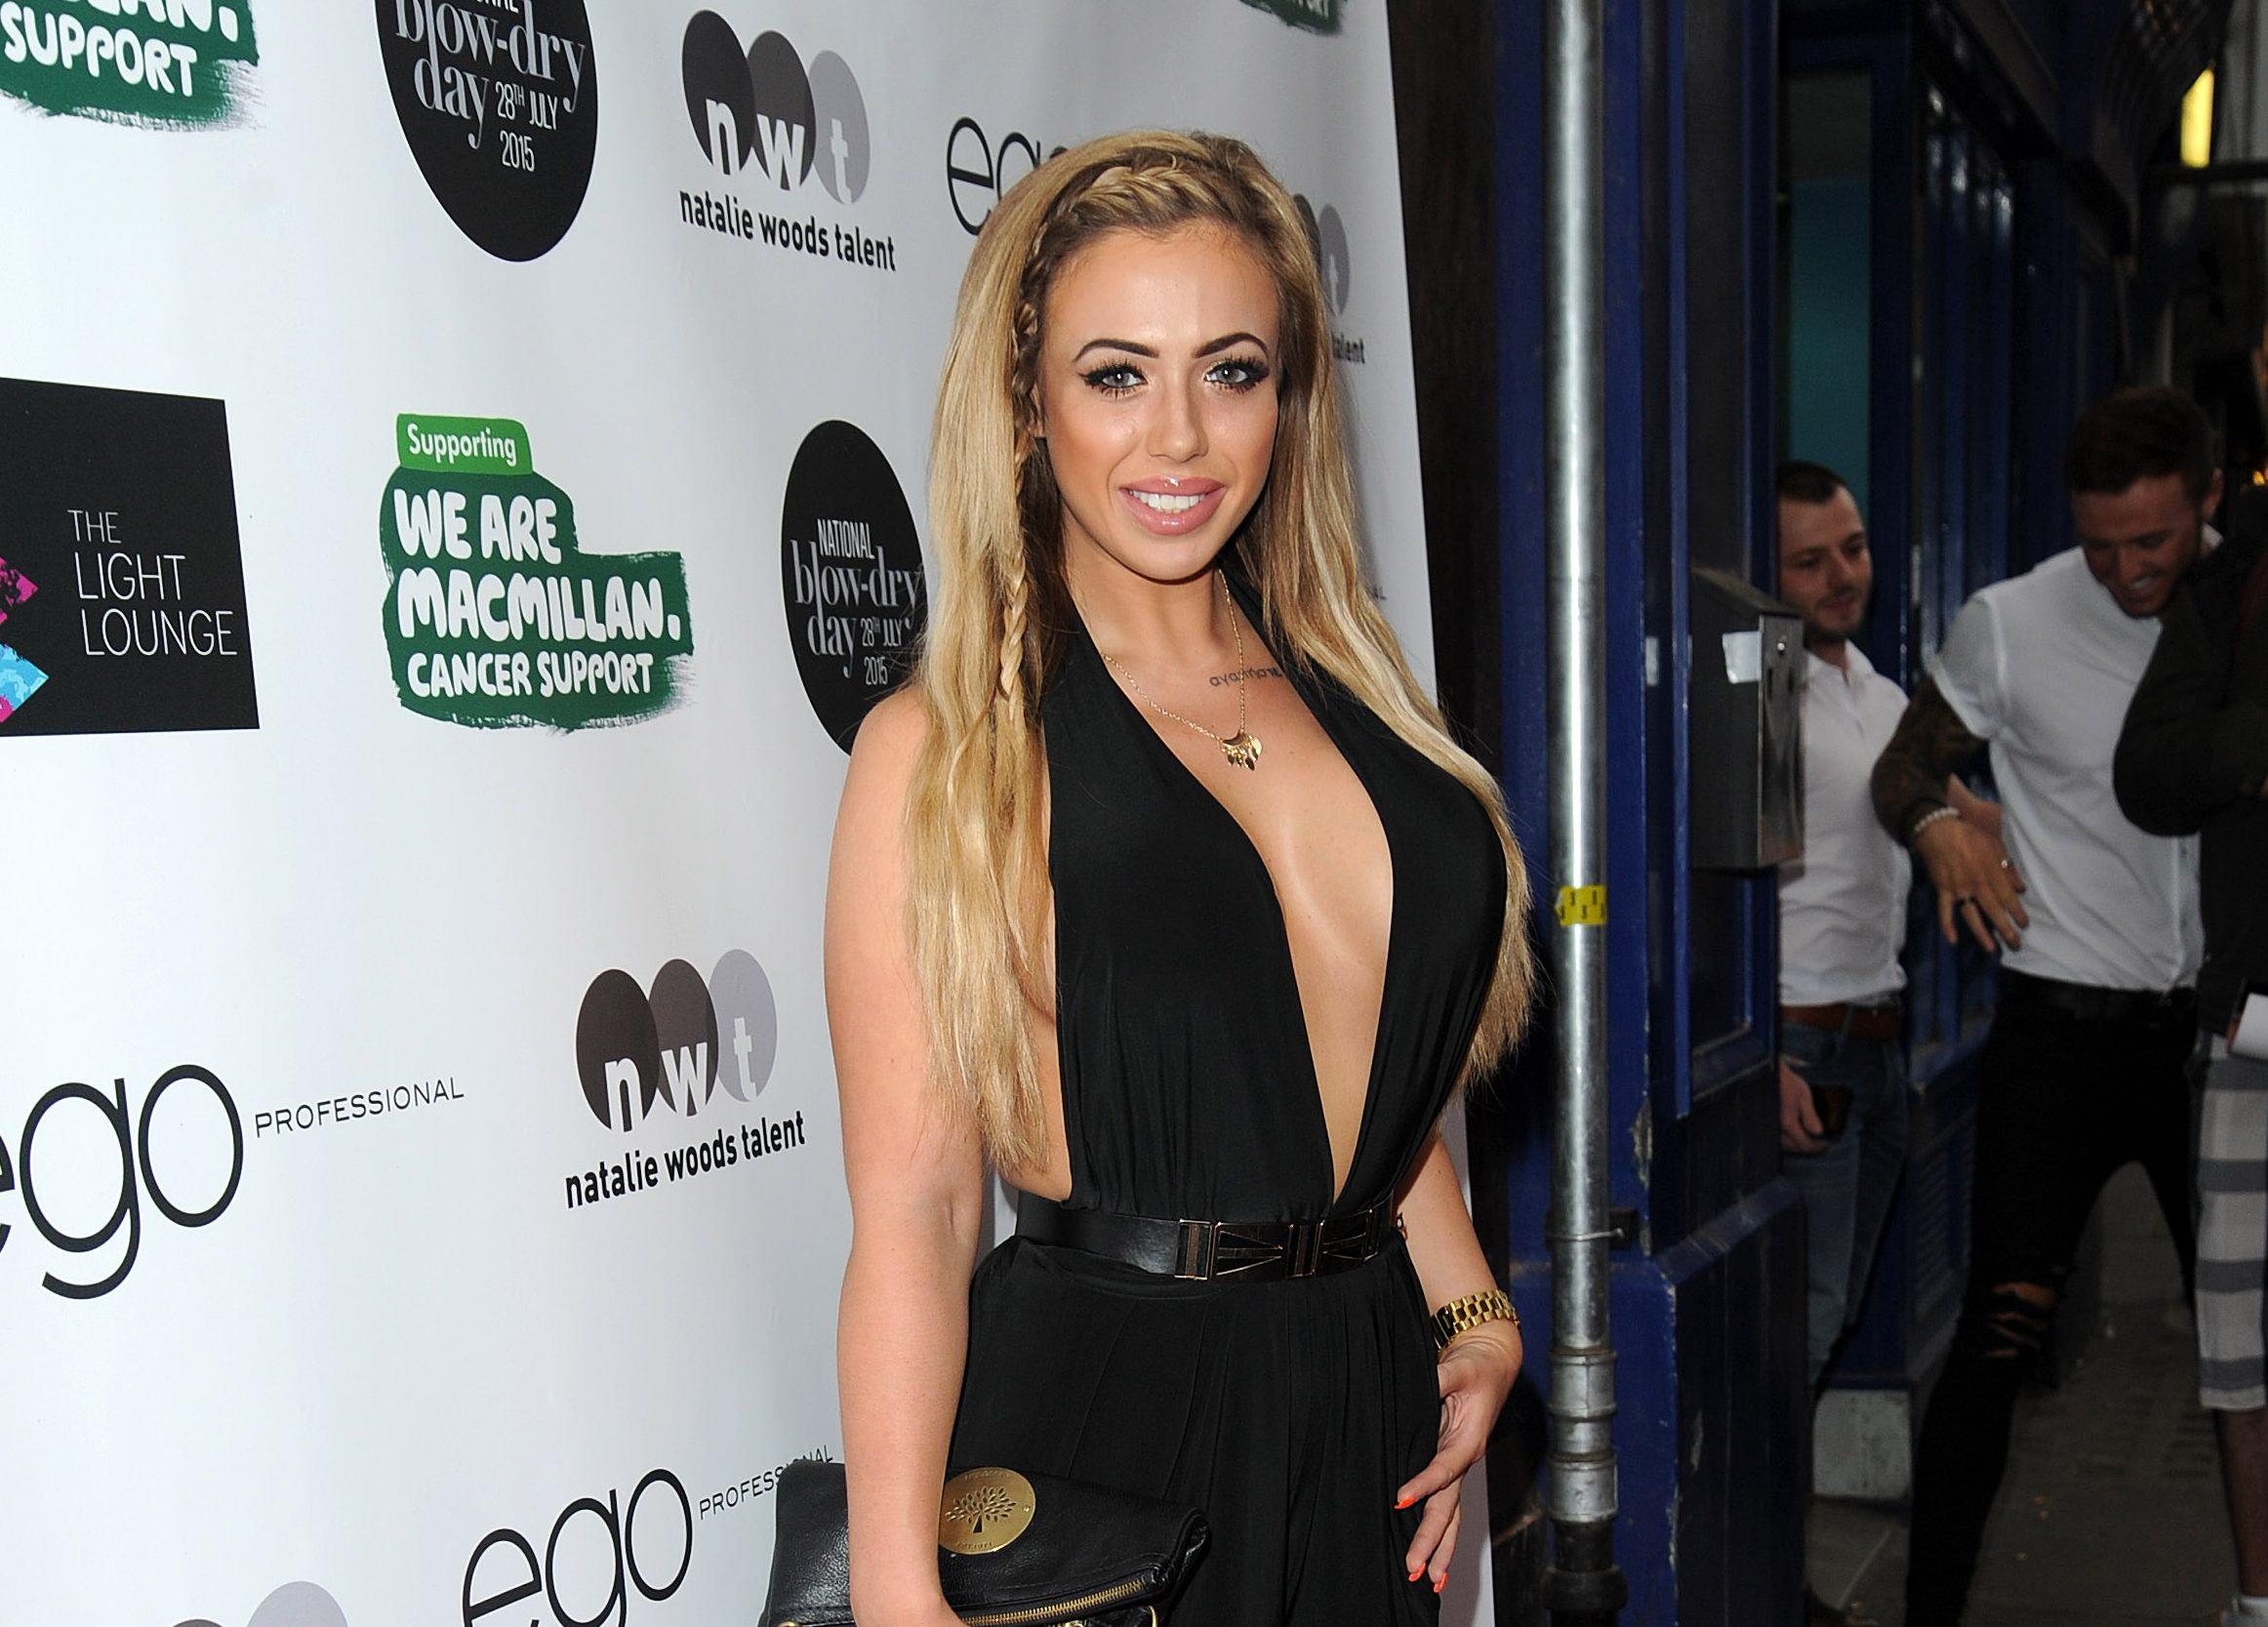 Holly Hagan to get the awkward tattoo of Kyle Christie's face lasered off her neck